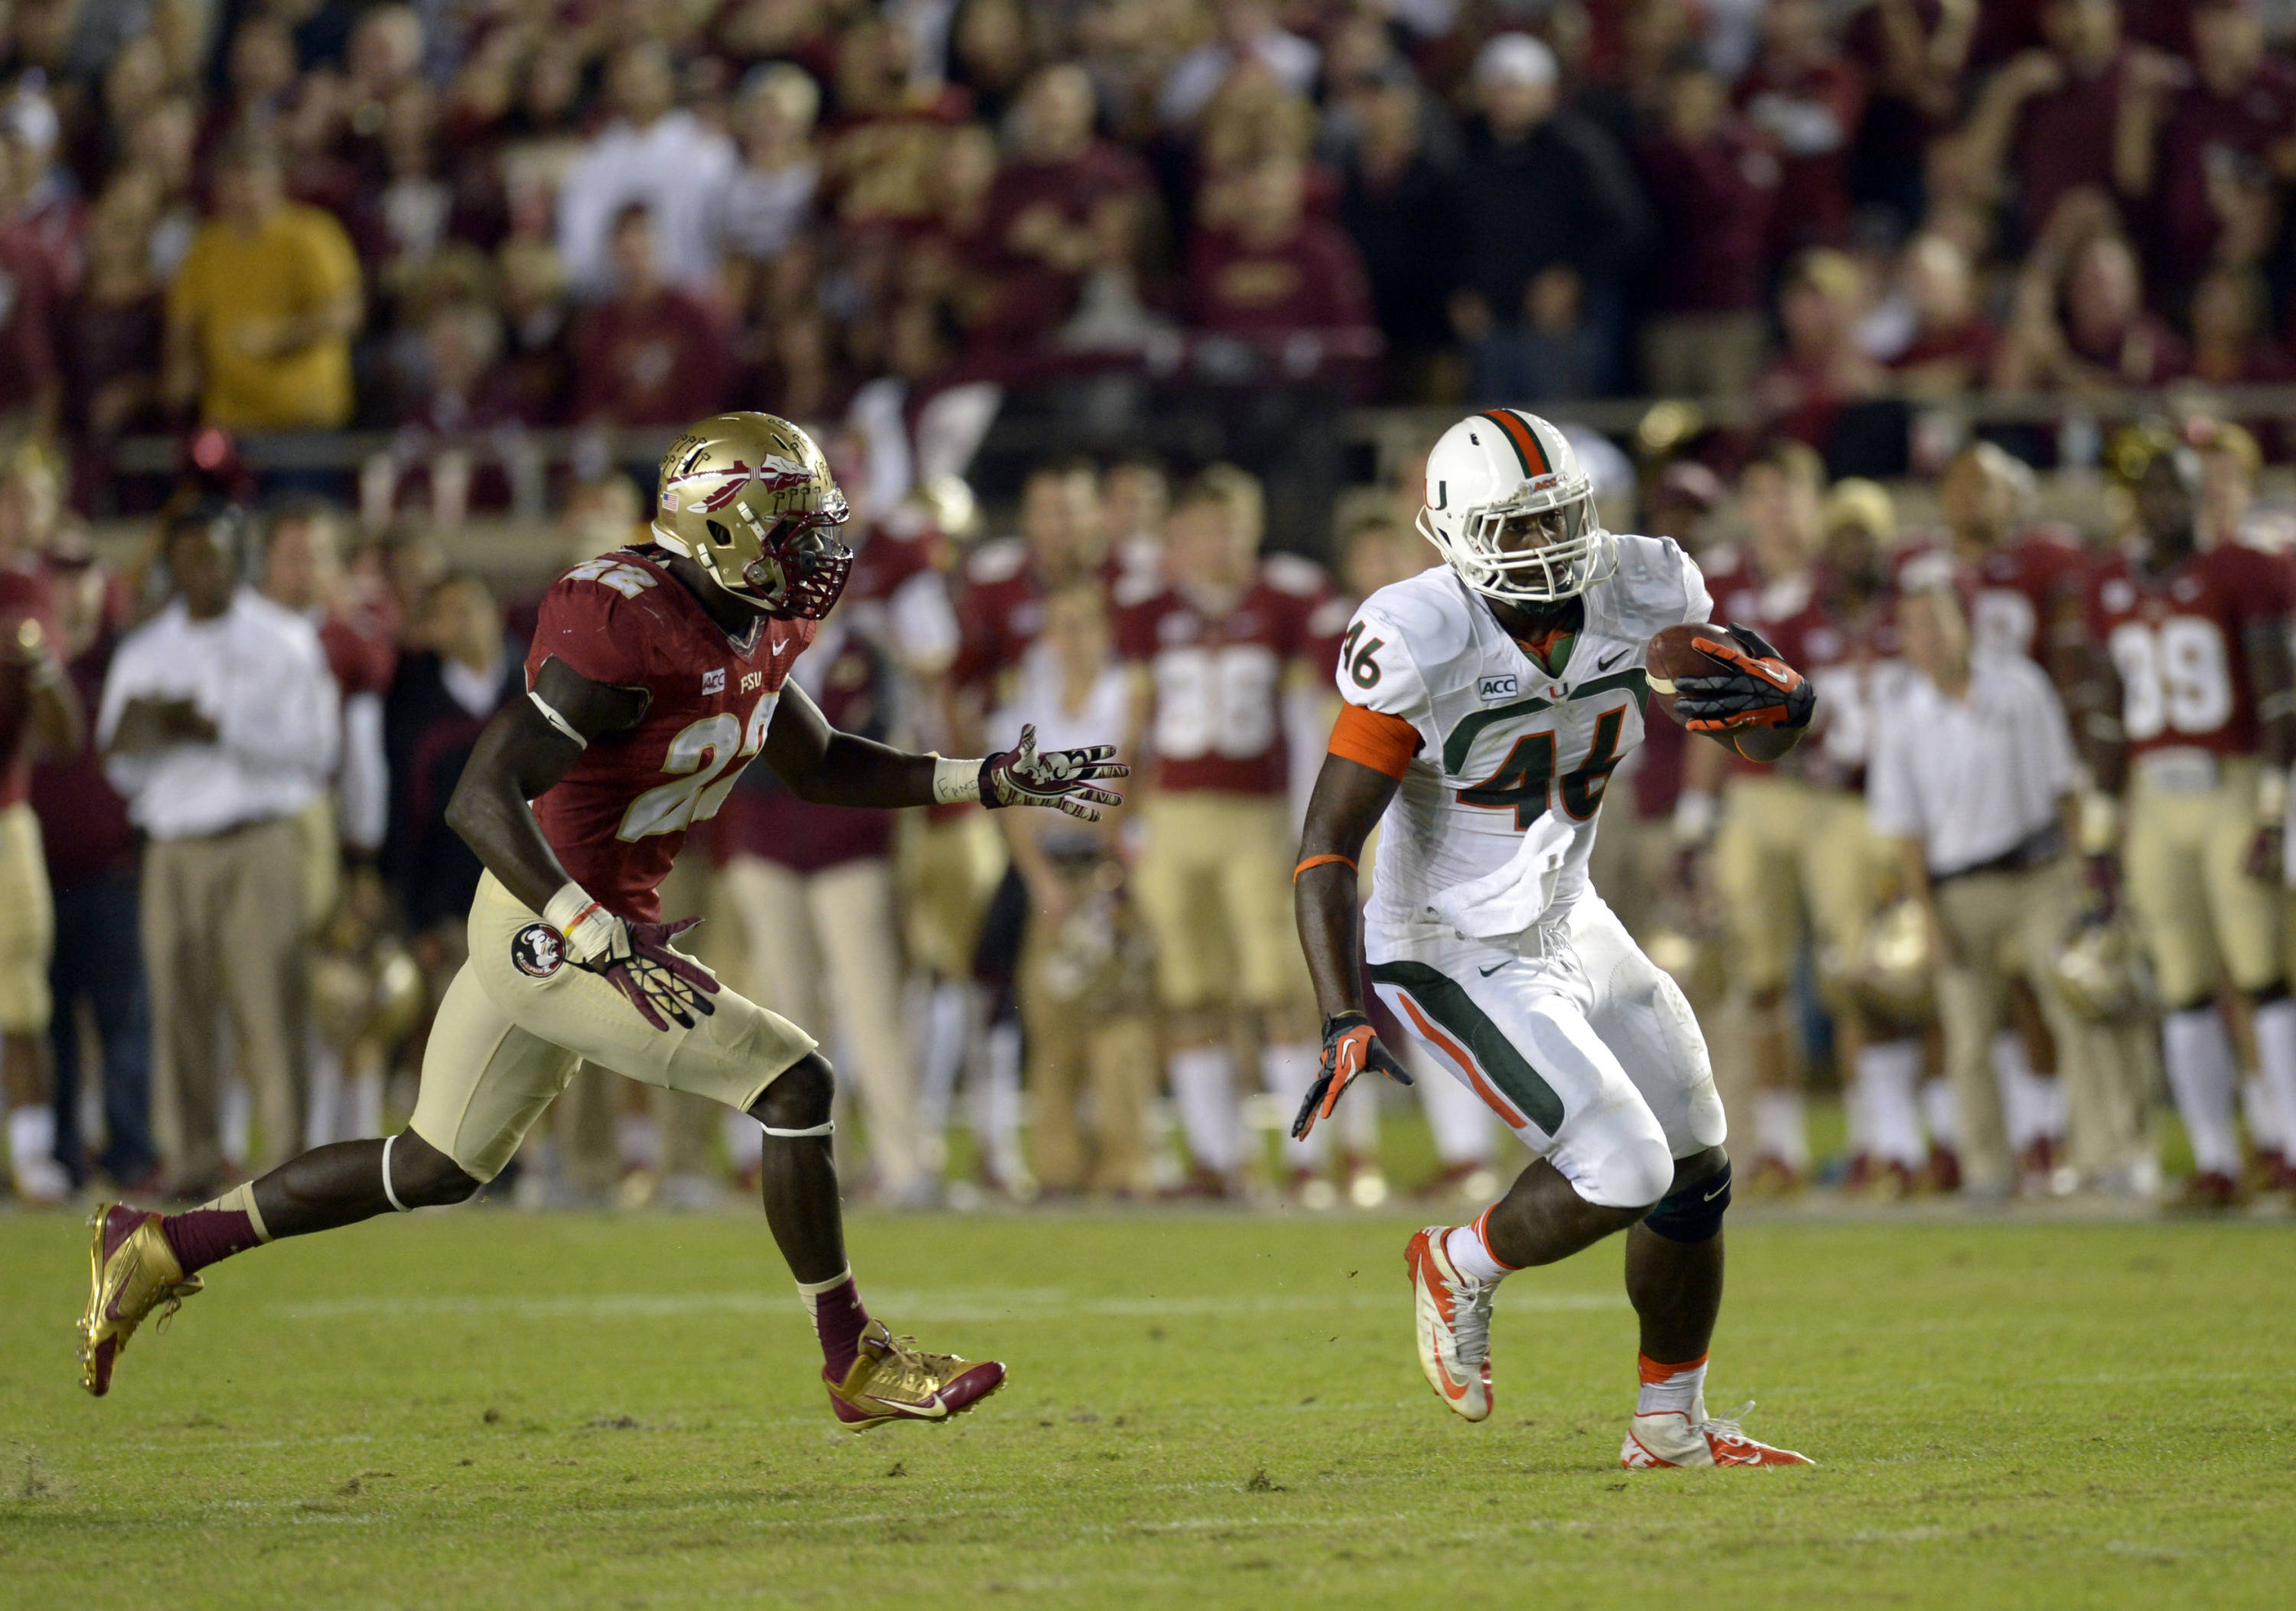 Miami Hurricanes tight end Clive Walford (46) carries up the field past Florida State Seminoles linebacker Telvin Smith (22) during the first quarter at Doak Campbell Stadium. Mandatory Credit: John David Mercer-USA TODAY Sports